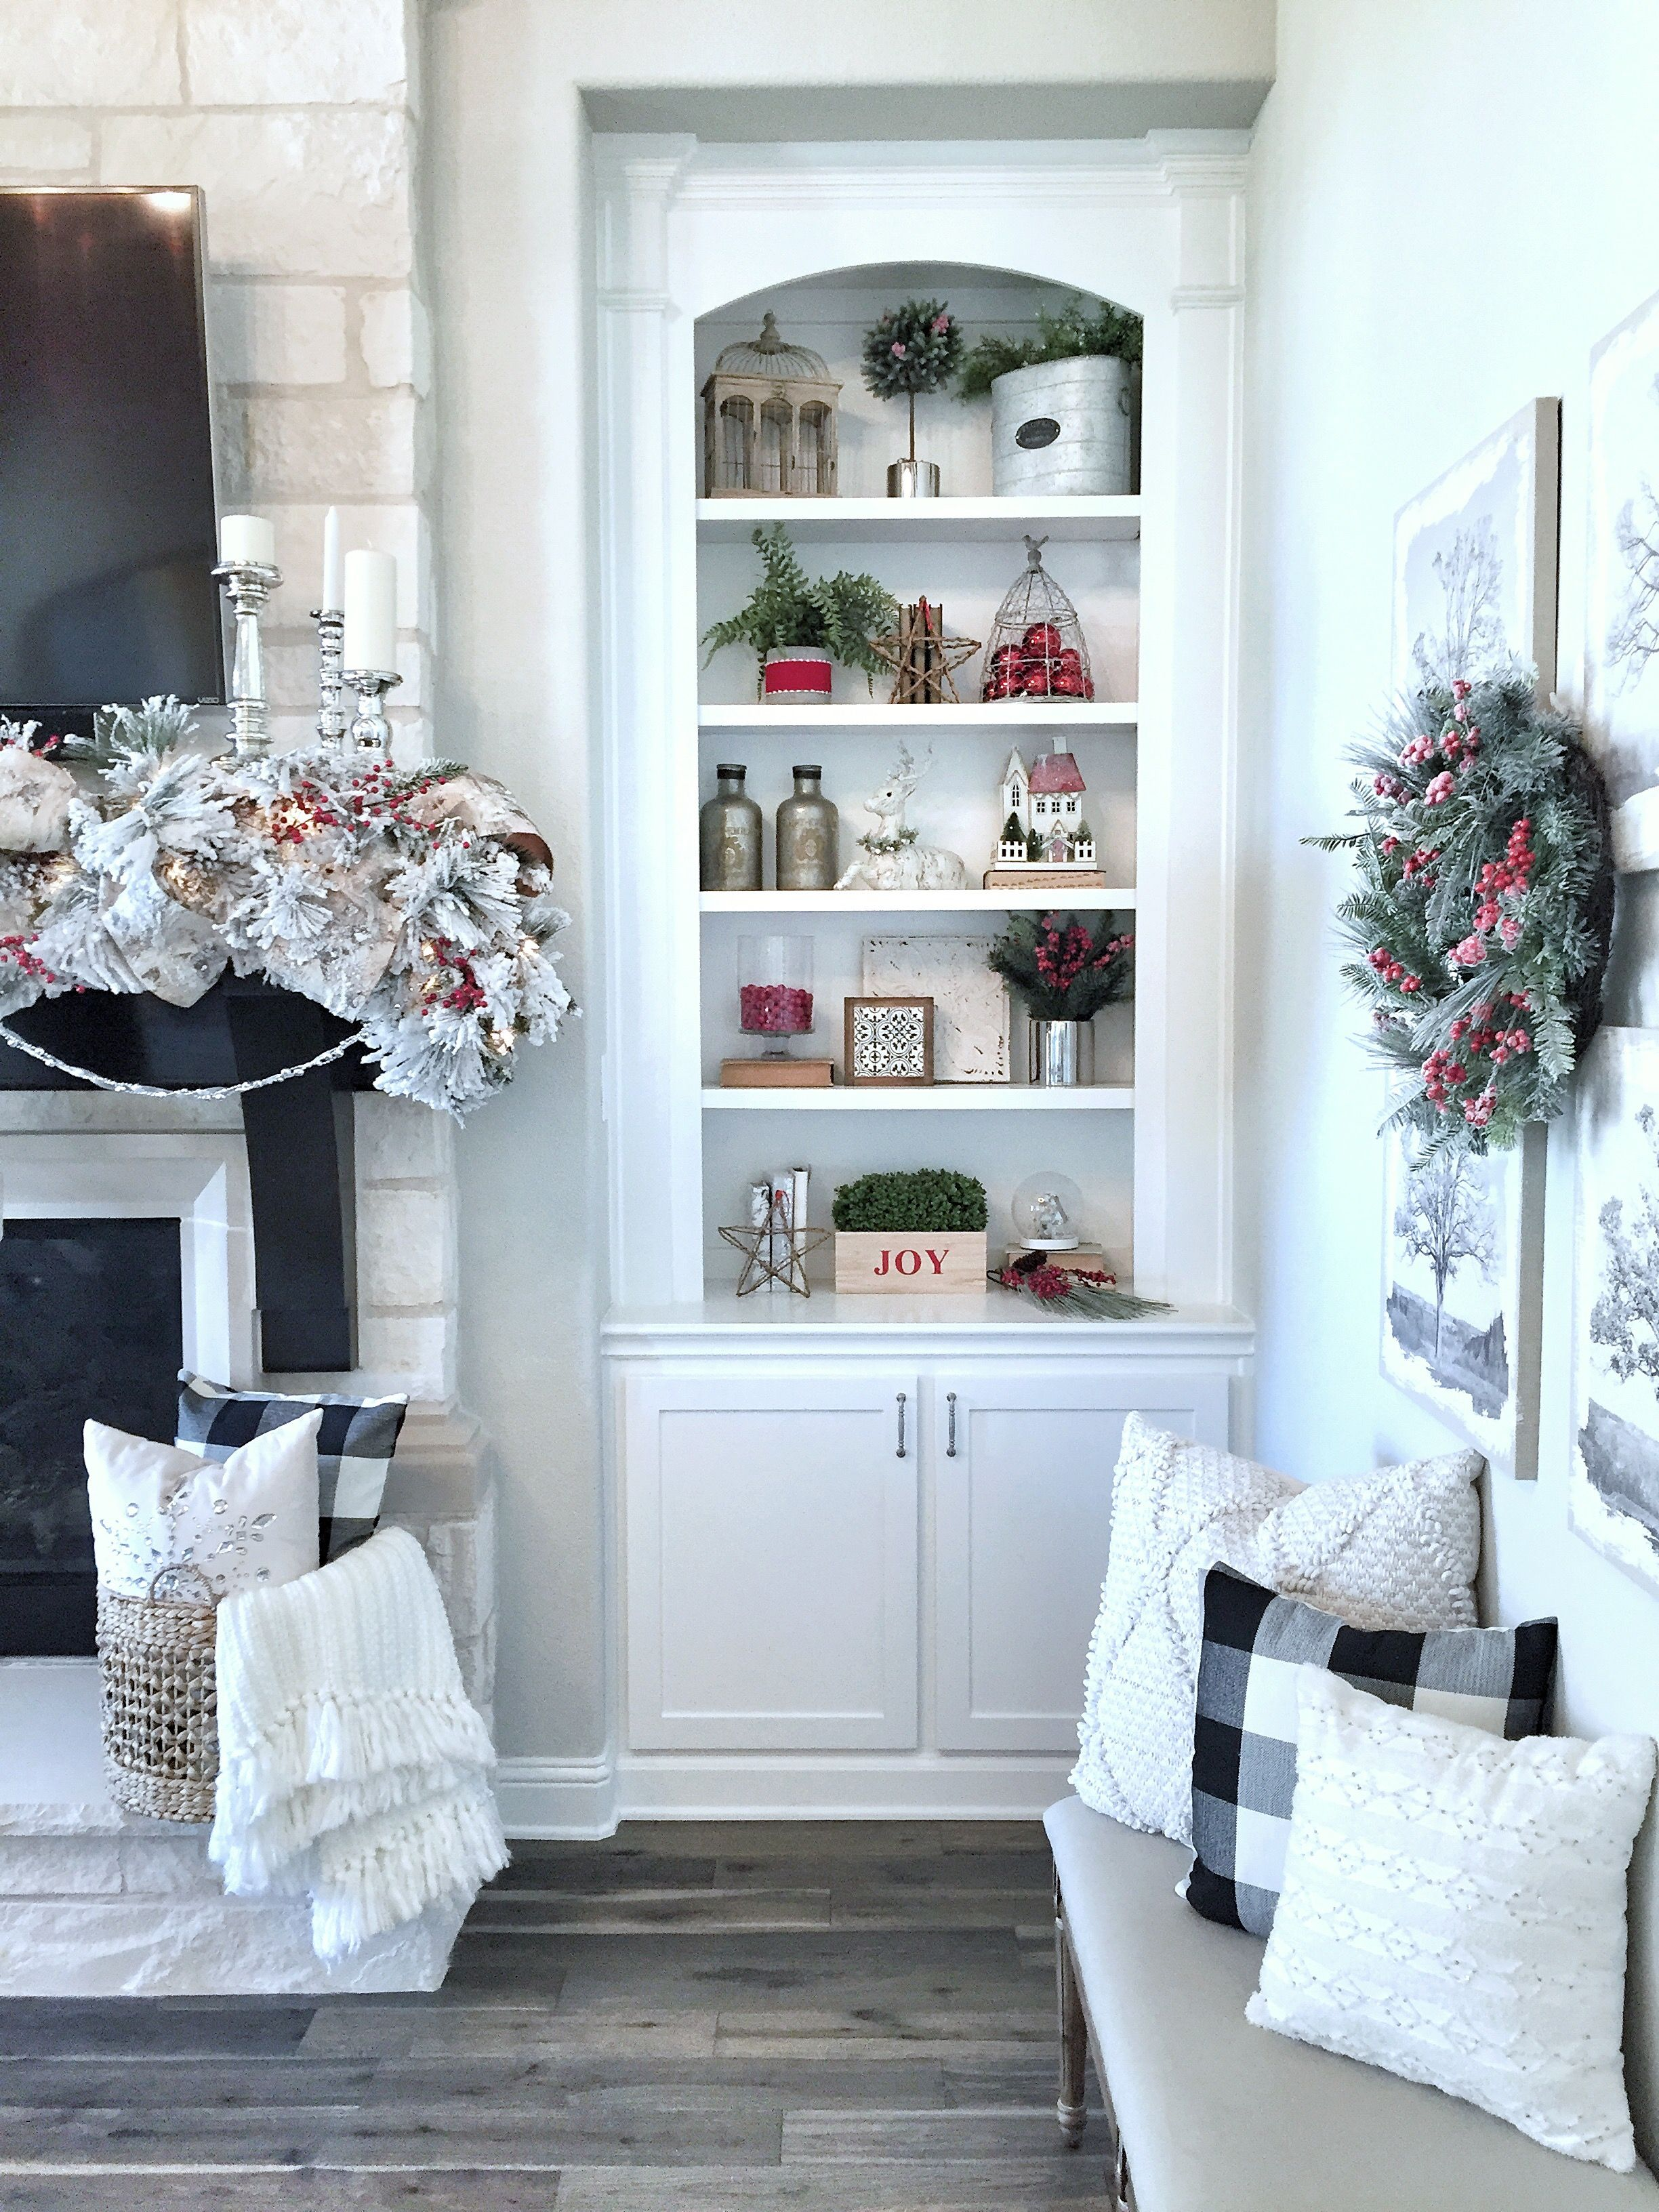 Post Contains Affiliate Links This Is My Family S First Christmas In Our New Home